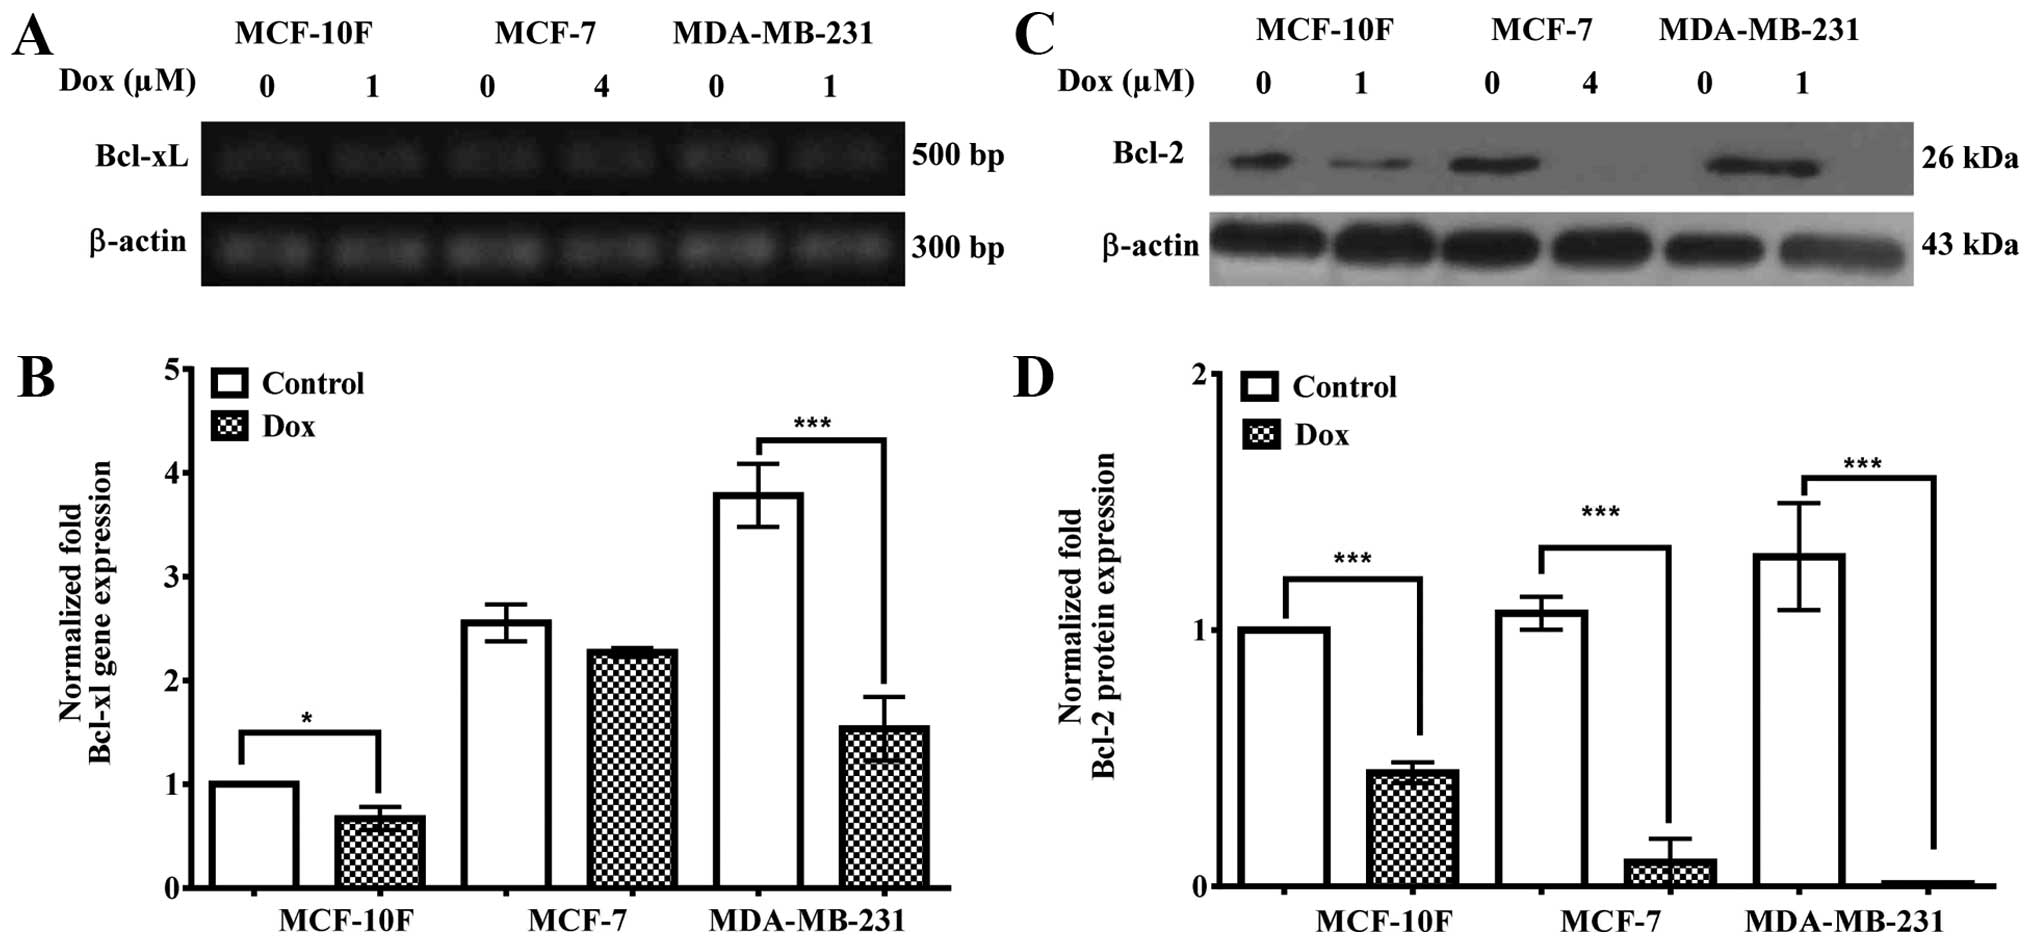 Effect Of Dox On Bcl Xl Gene Expression A And Quantified B In Mcf 10f 7 Mda Mb 231 Cell Lines By Ddrt Pcr 2 Protein Was